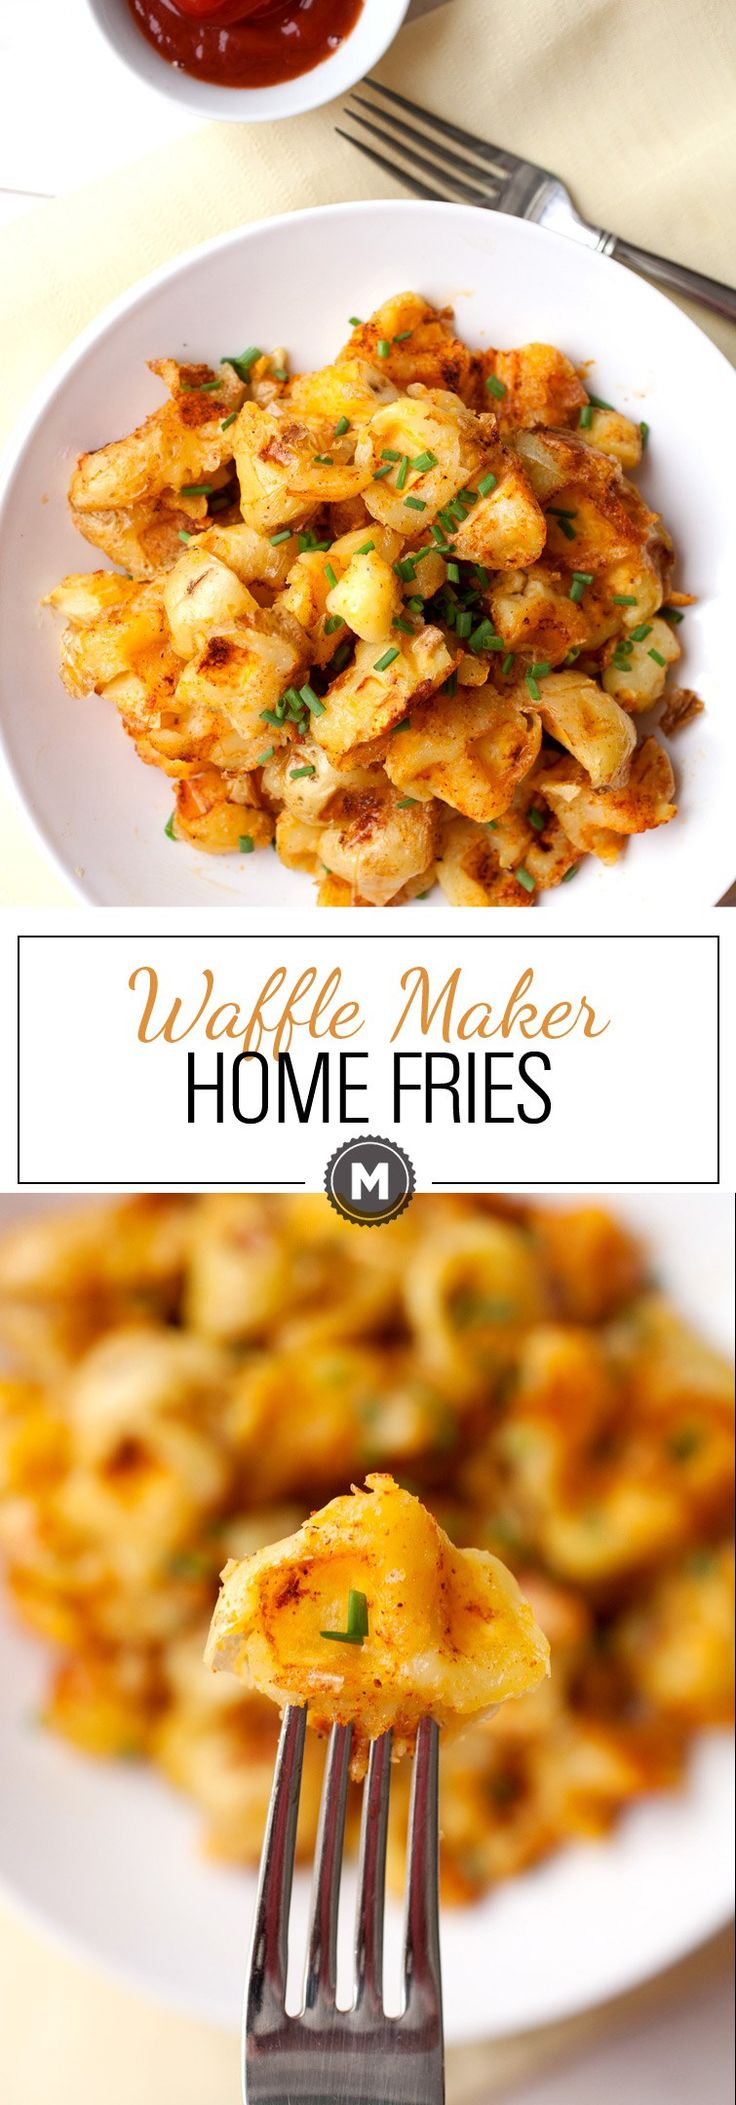 Waffle Maker Home Fries: Crispy and perfect home fries made in a waffle maker! Well seasoned with crispy edges and tender interior. Pile them high and enjoy! | macheesmo.com